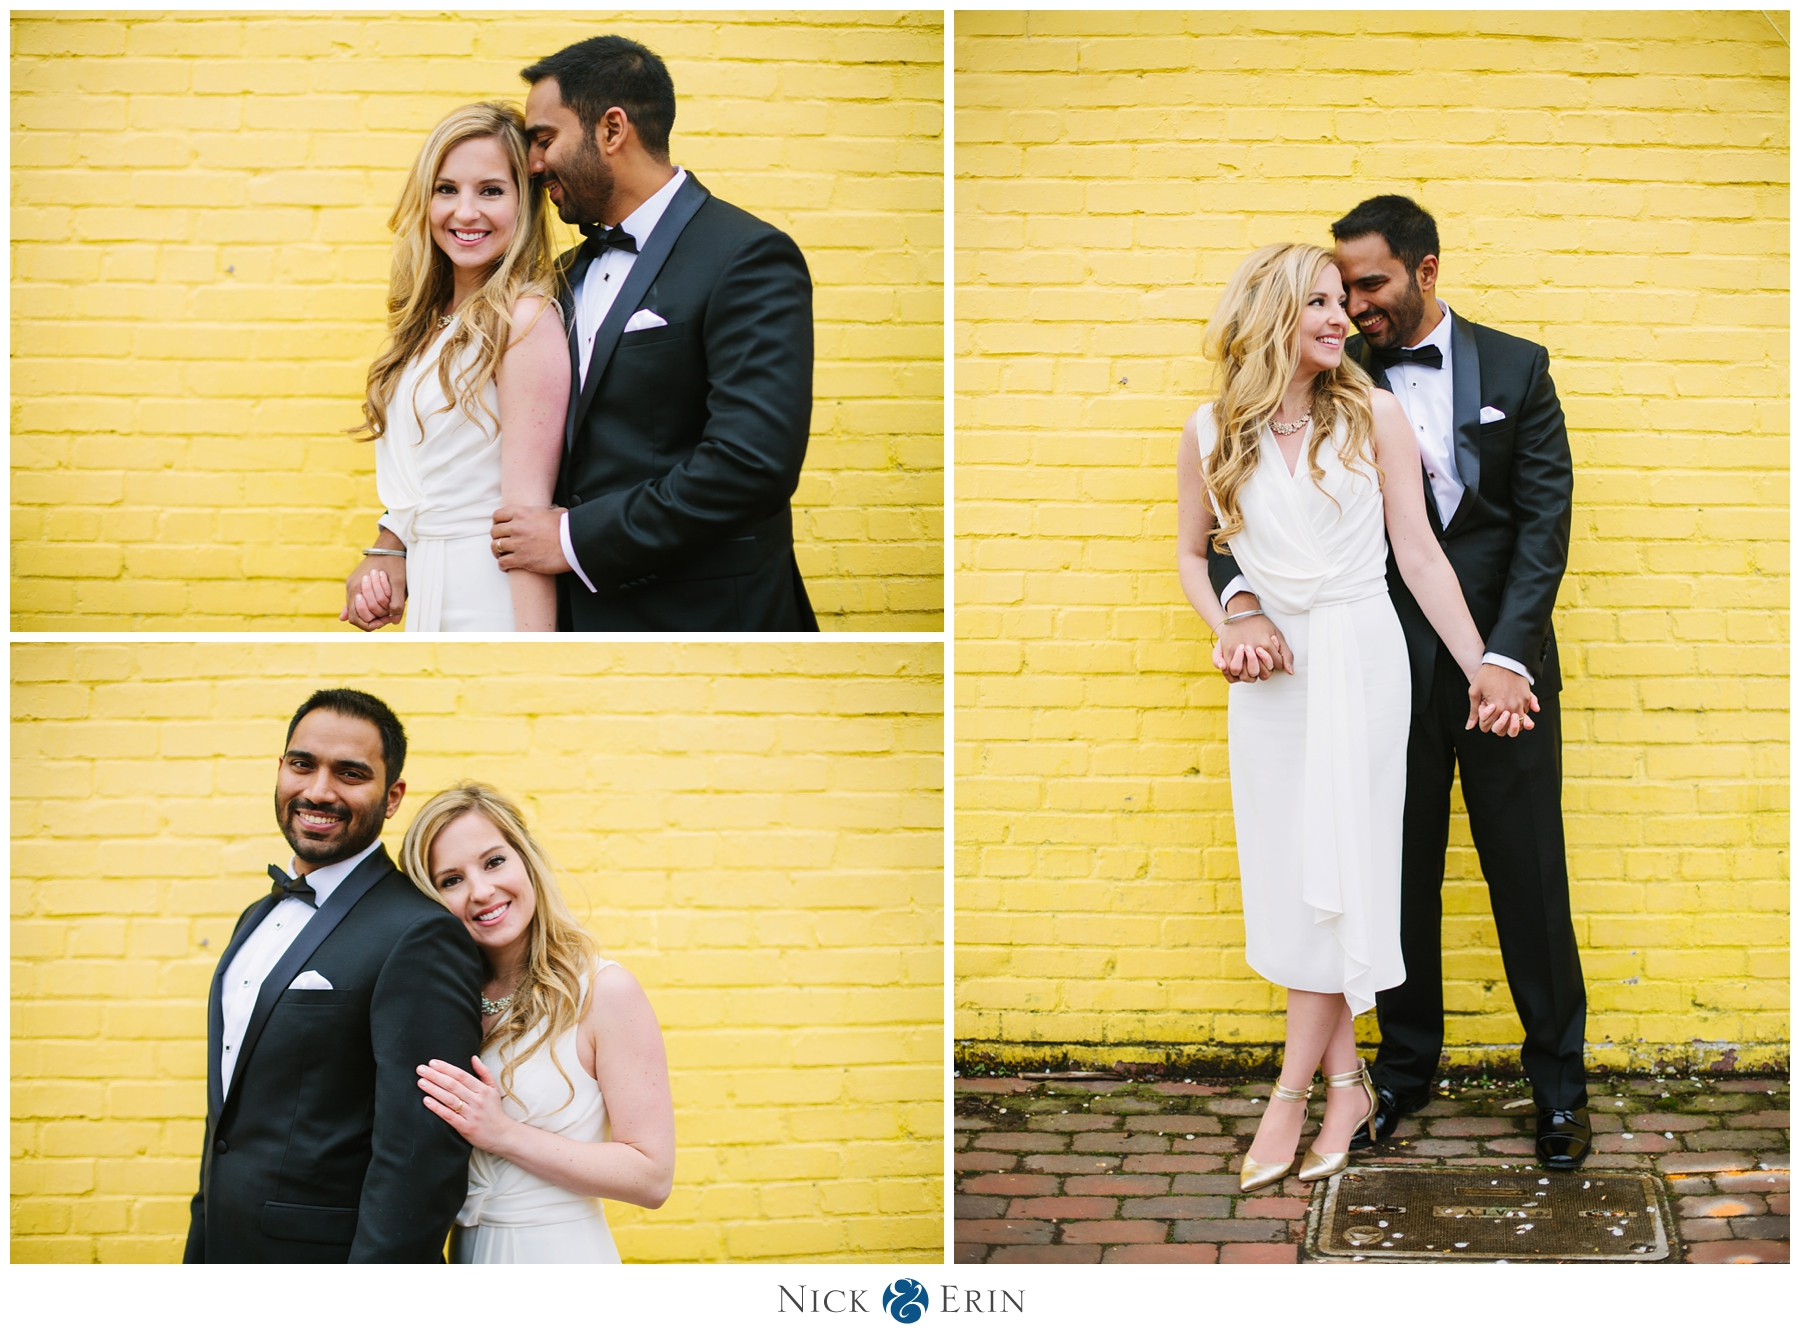 Donner_Photography_Old Town Wedding_Mary & Amar_0004